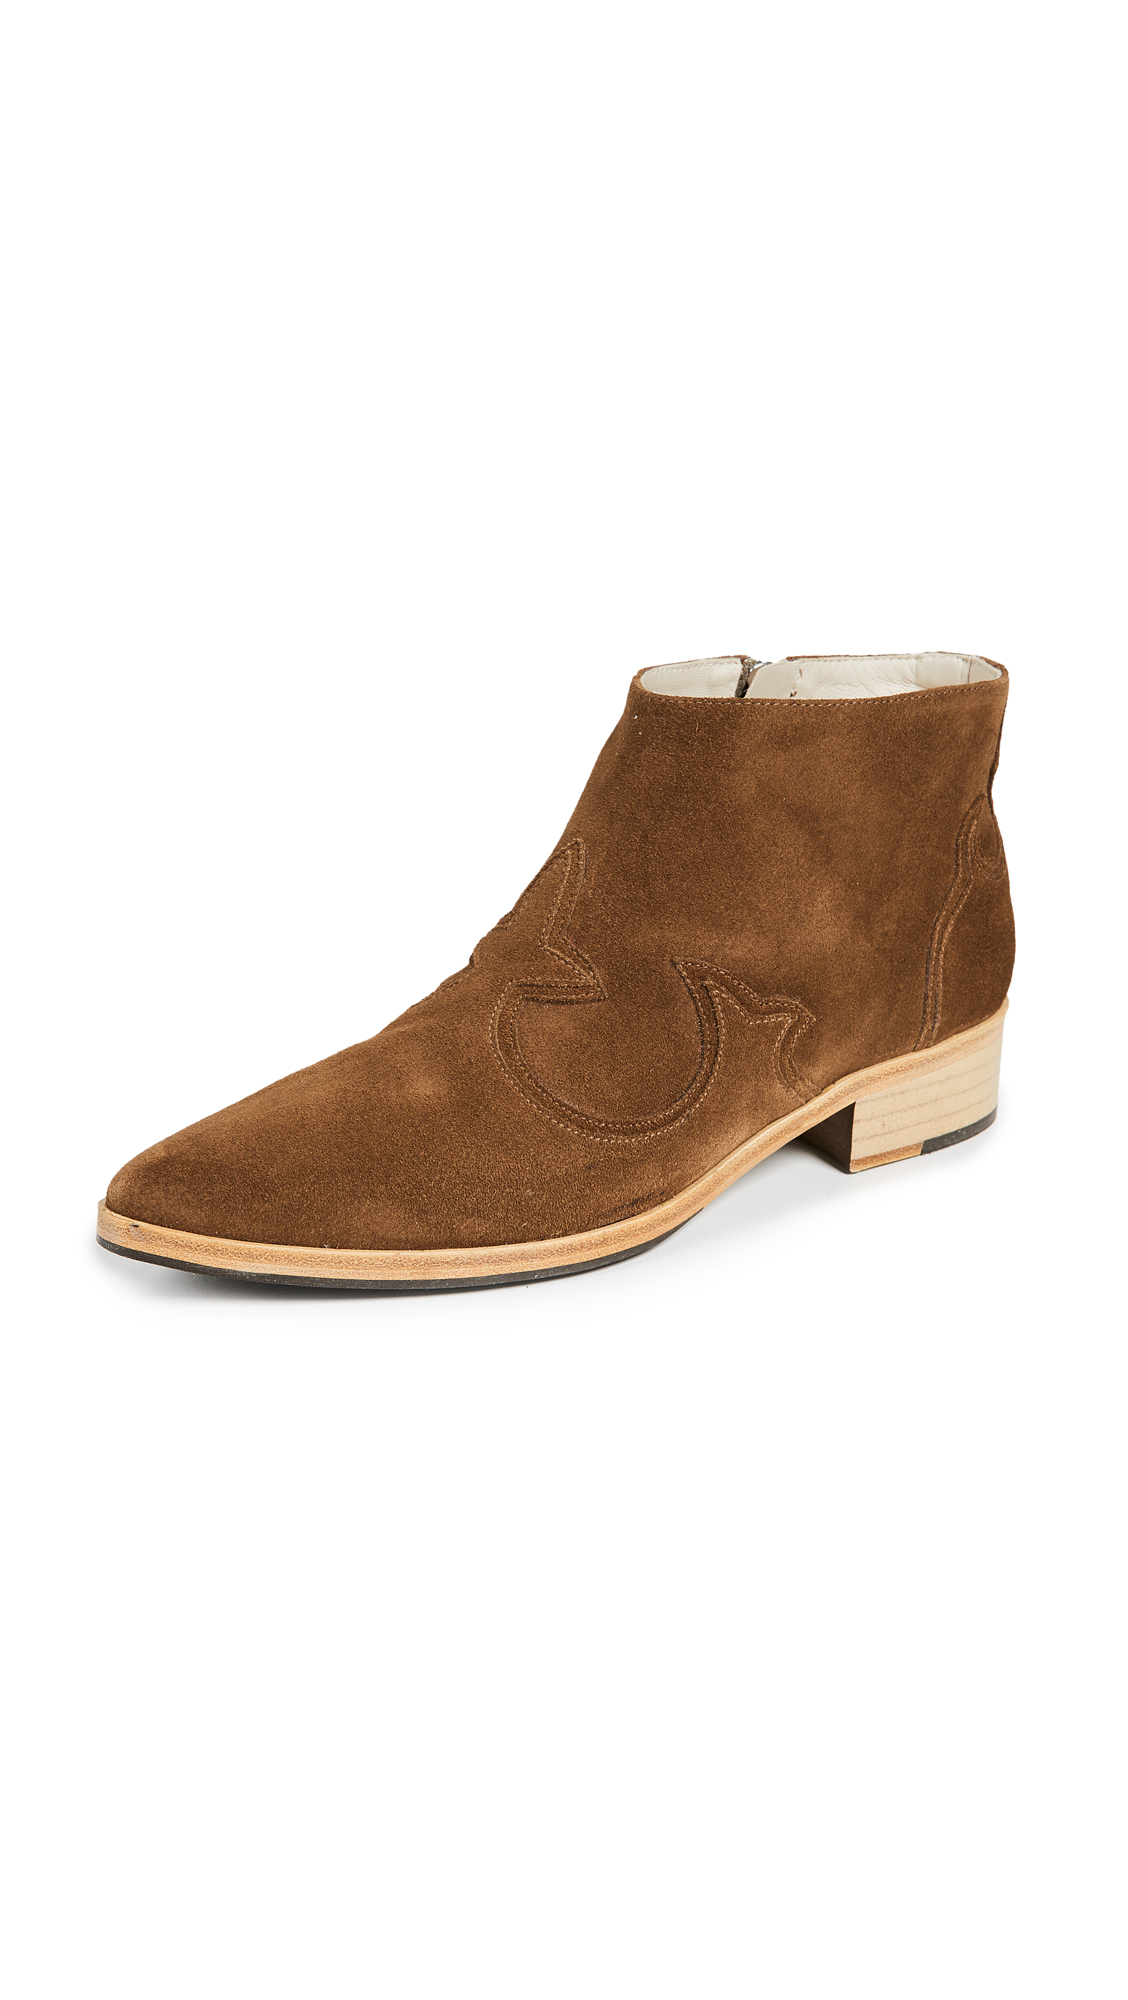 Freda Salvador The Arroyo Western Booties - Brown